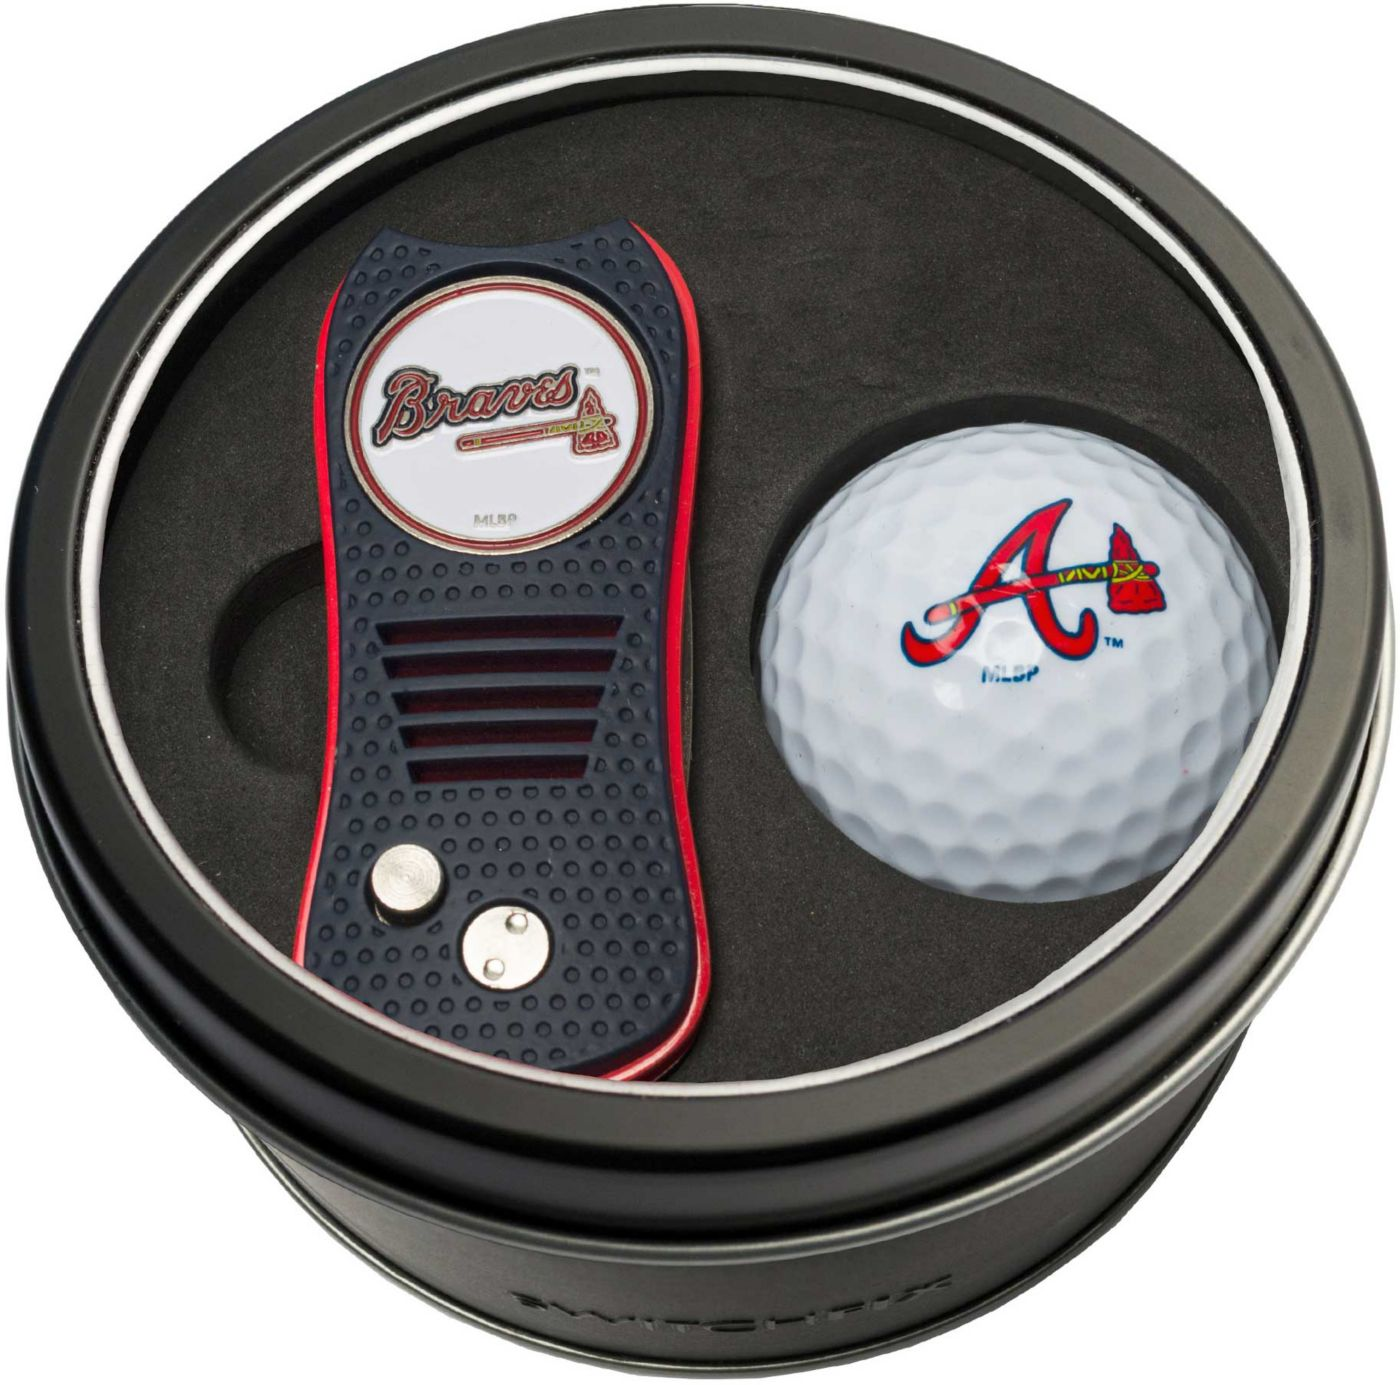 Team Golf Atlanta Braves Switchfix Divot Tool and Golf Ball Set